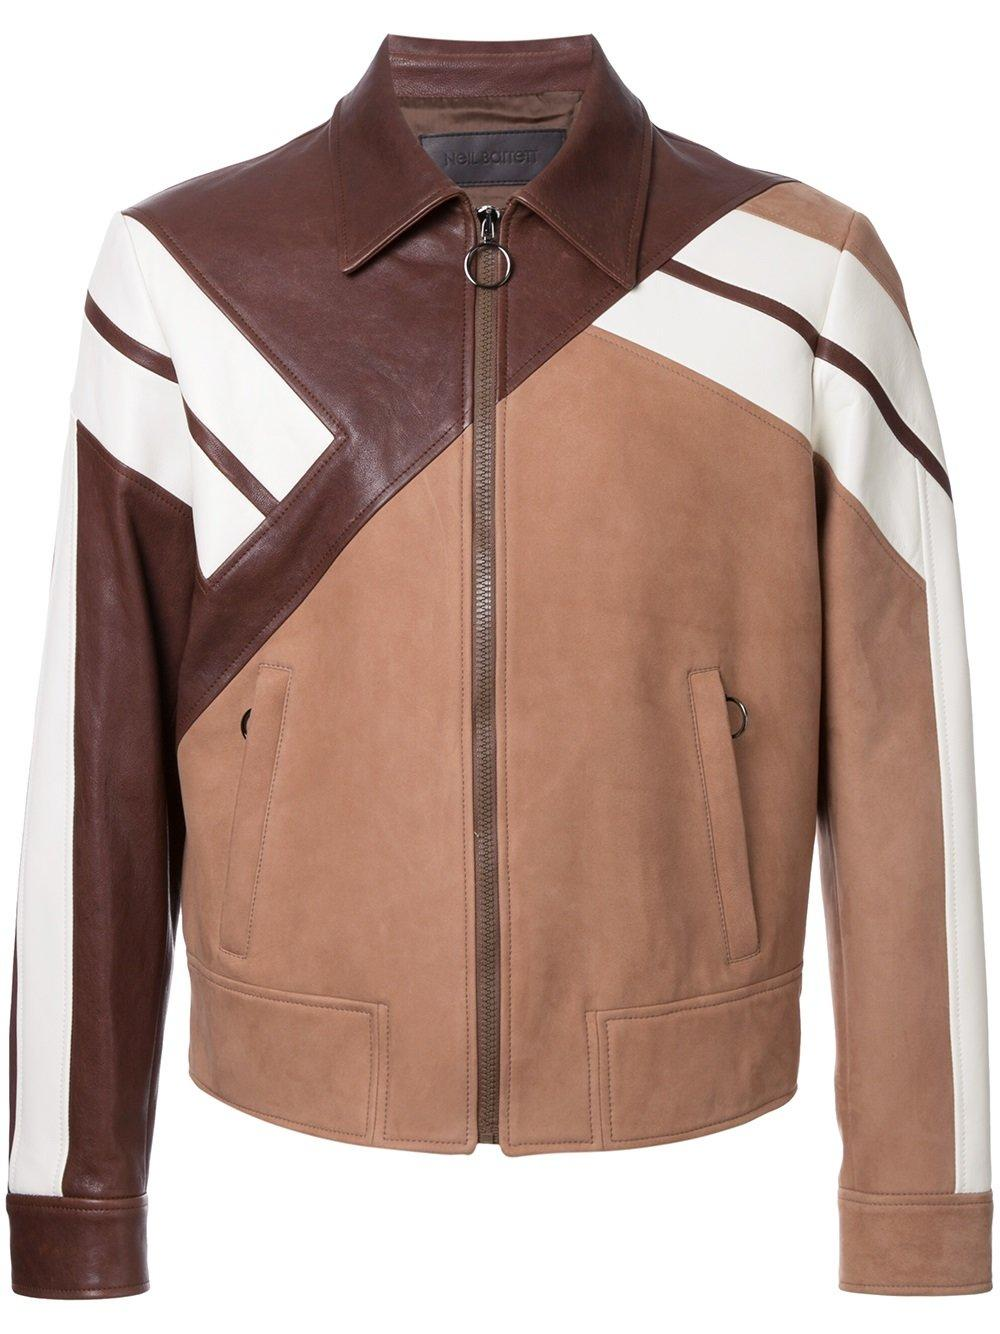 Neil barrett geometric pannelled jacket in brown for men for Mens chocolate brown dress shirt